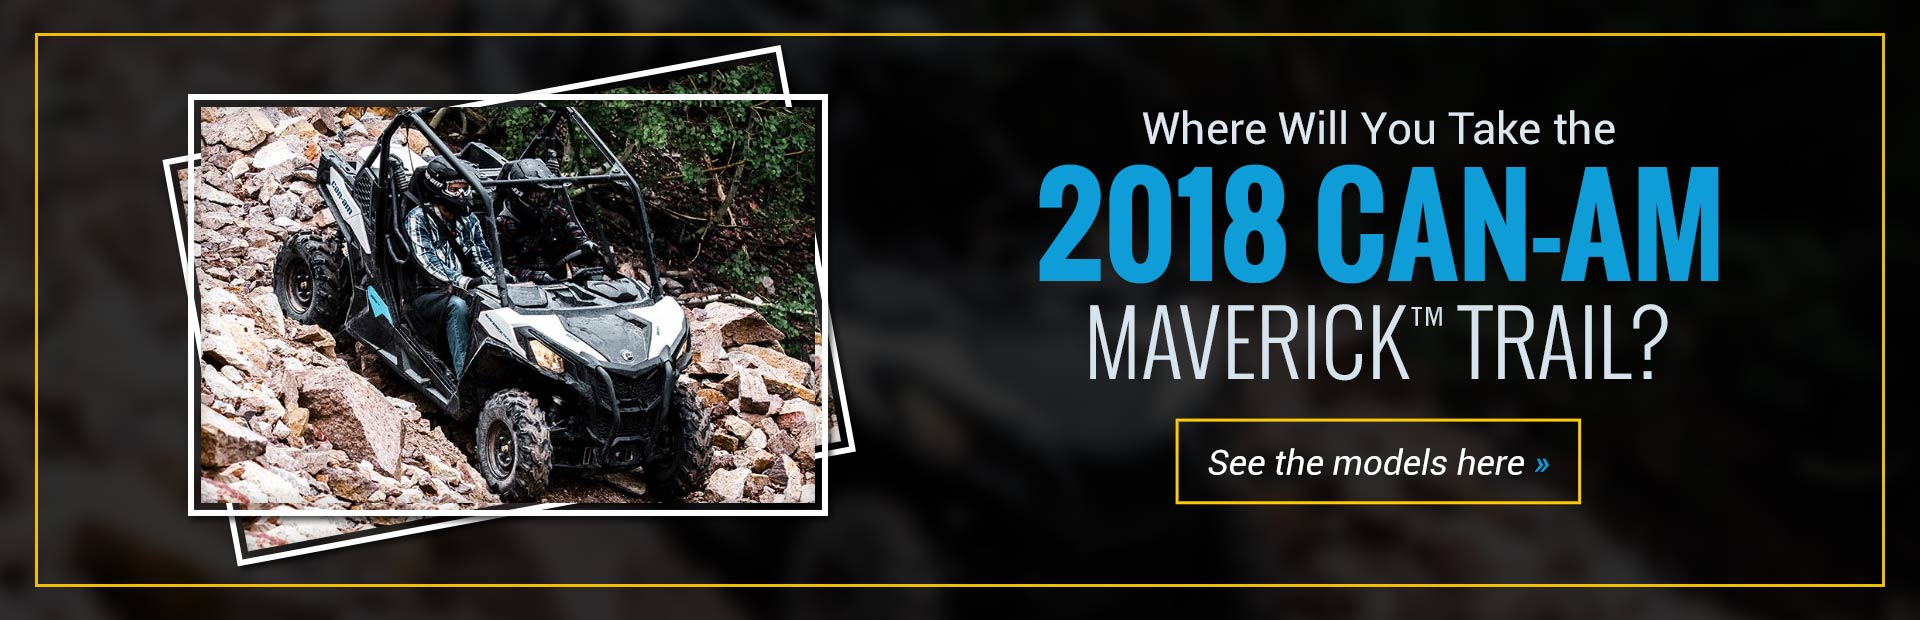 2018 Can-Am Maverick™ Trail: Click here to view the models.